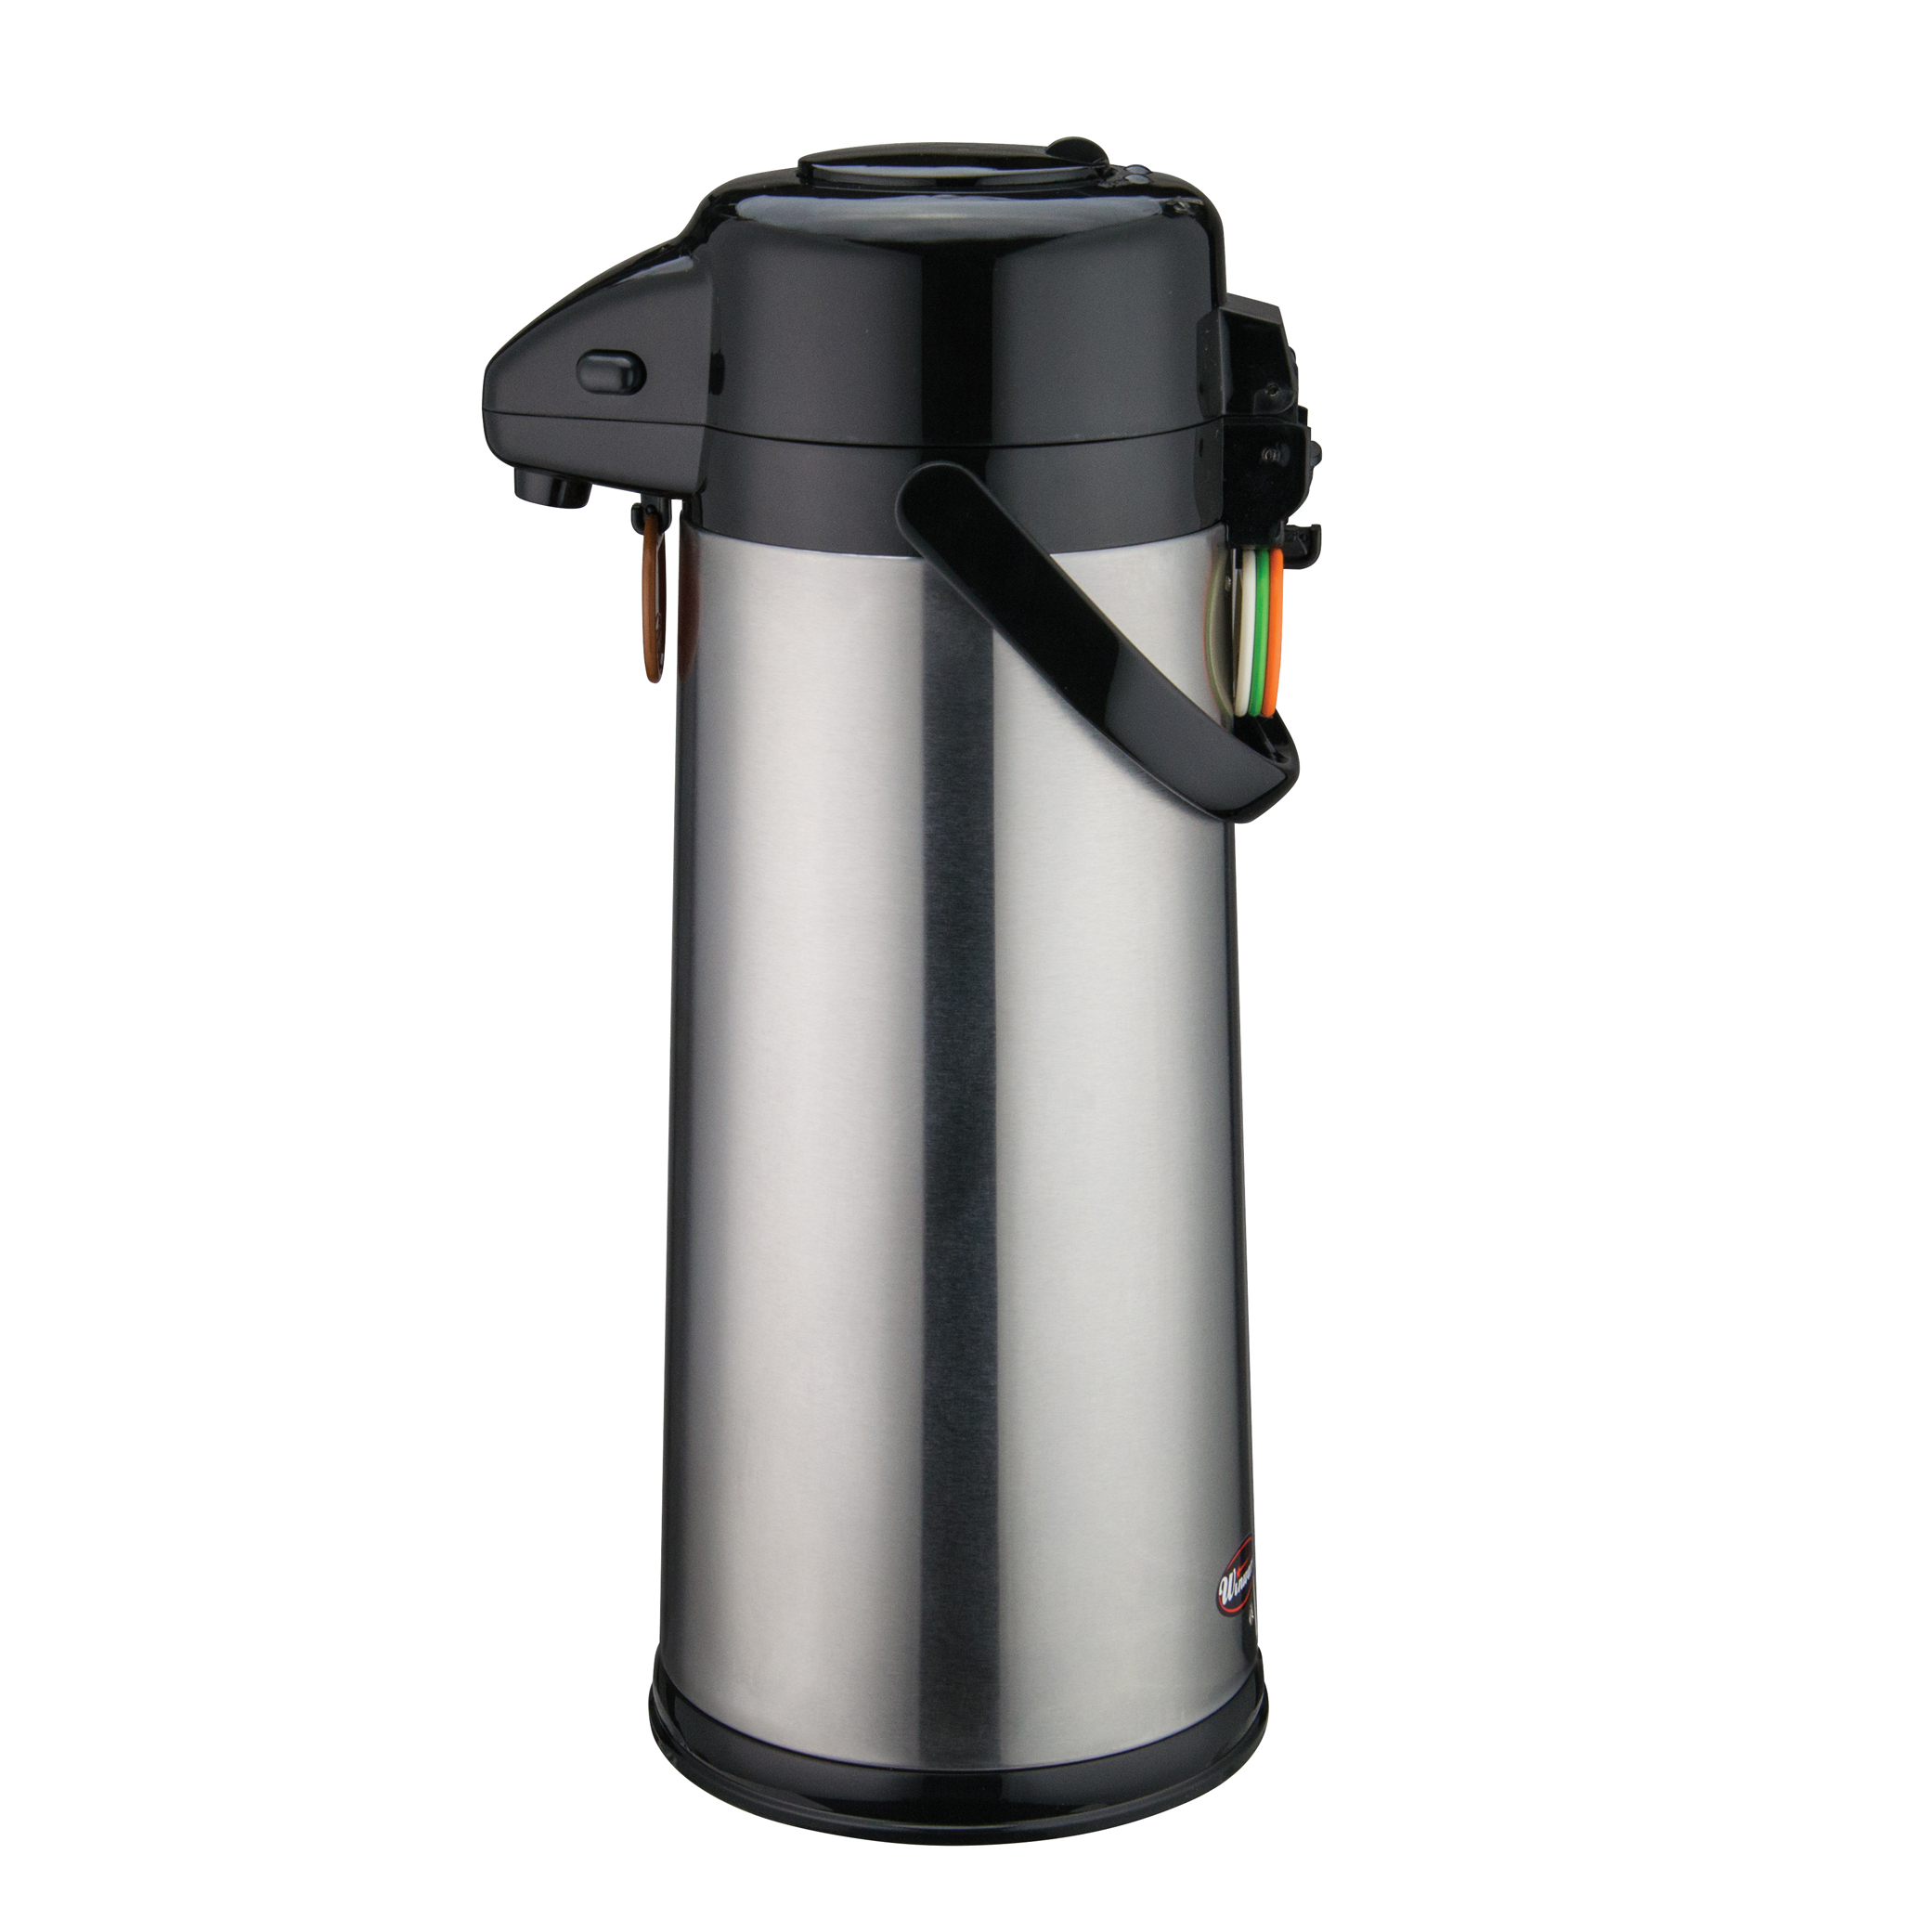 Winco AP-535 airpot